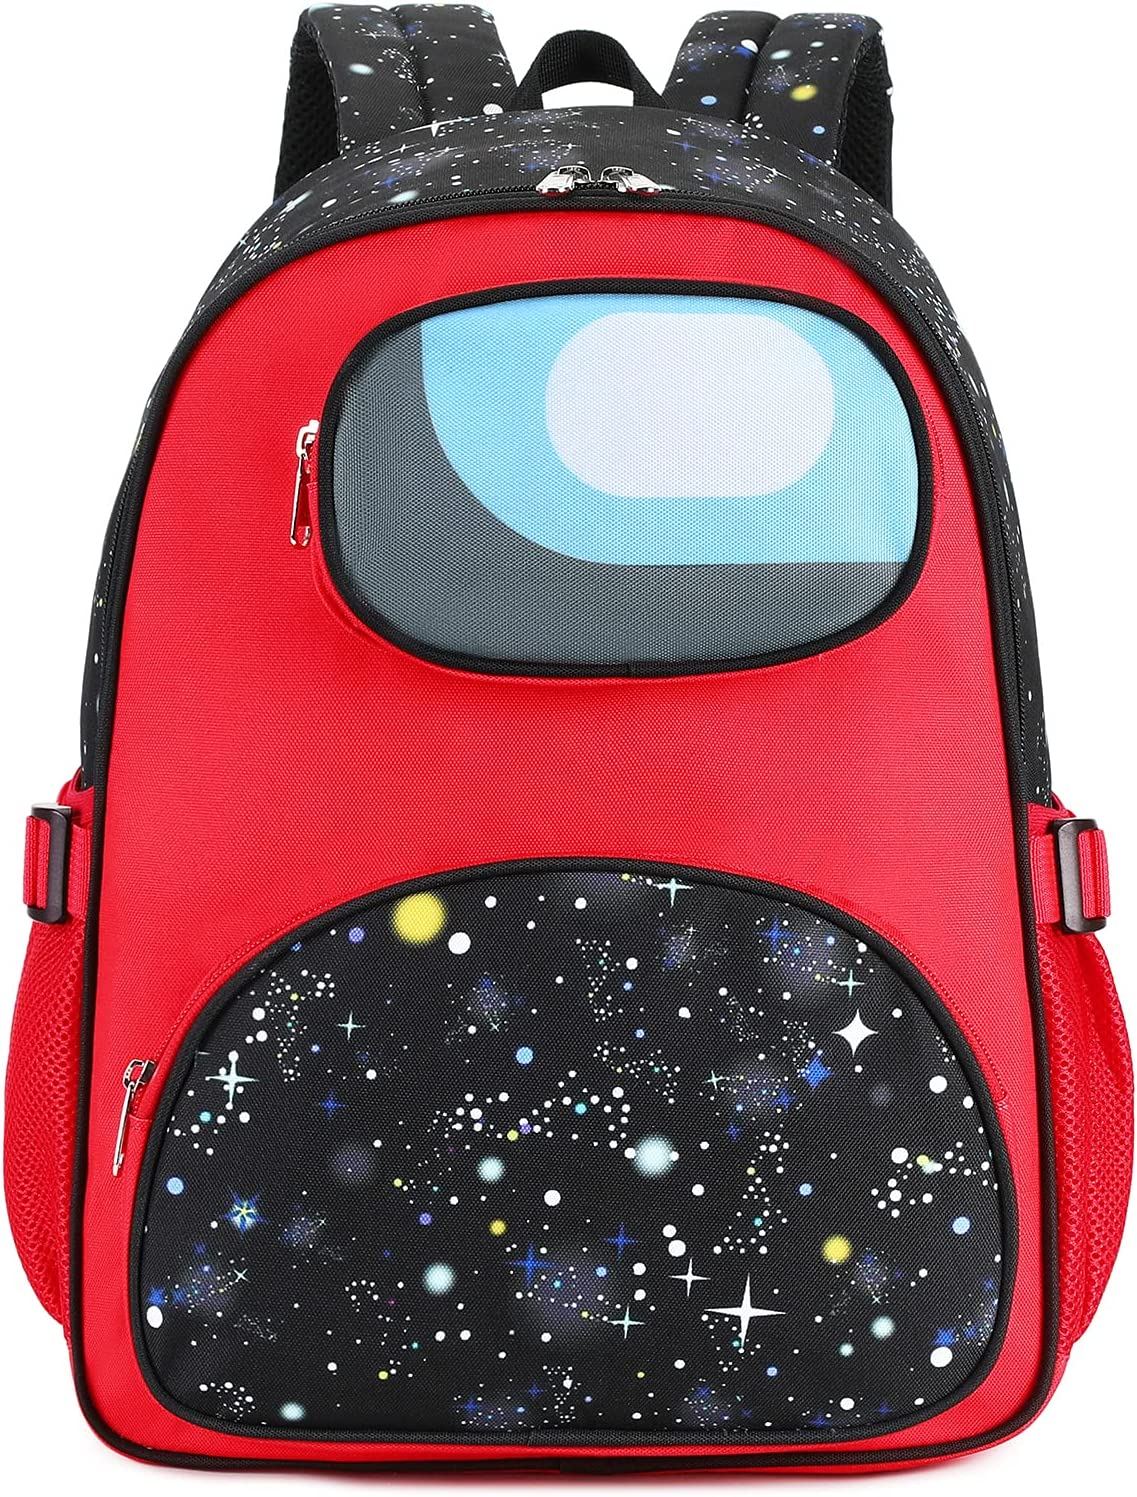 BTOOP Toddler Backpack for Boys Waterproof Cute Special price a limited time Kids Genuine Free Shipping 3D